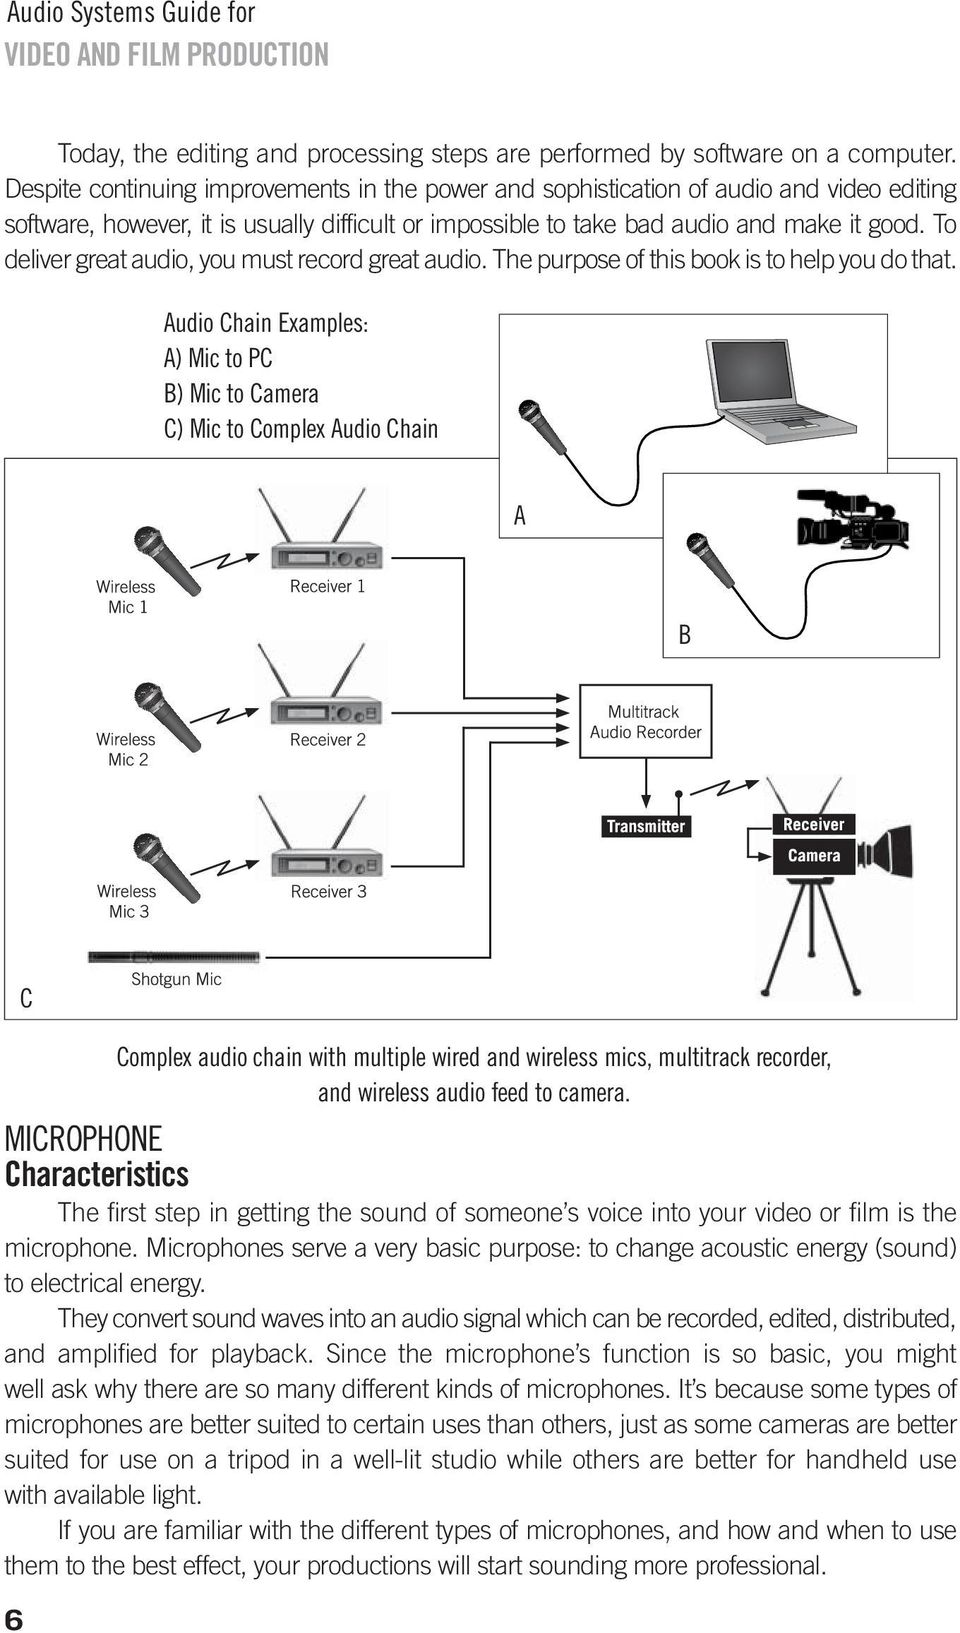 Audio Chain Diagram Trusted Schematics Mixer Circuit Systems Guide Video And Film Production By Chris Lyons A